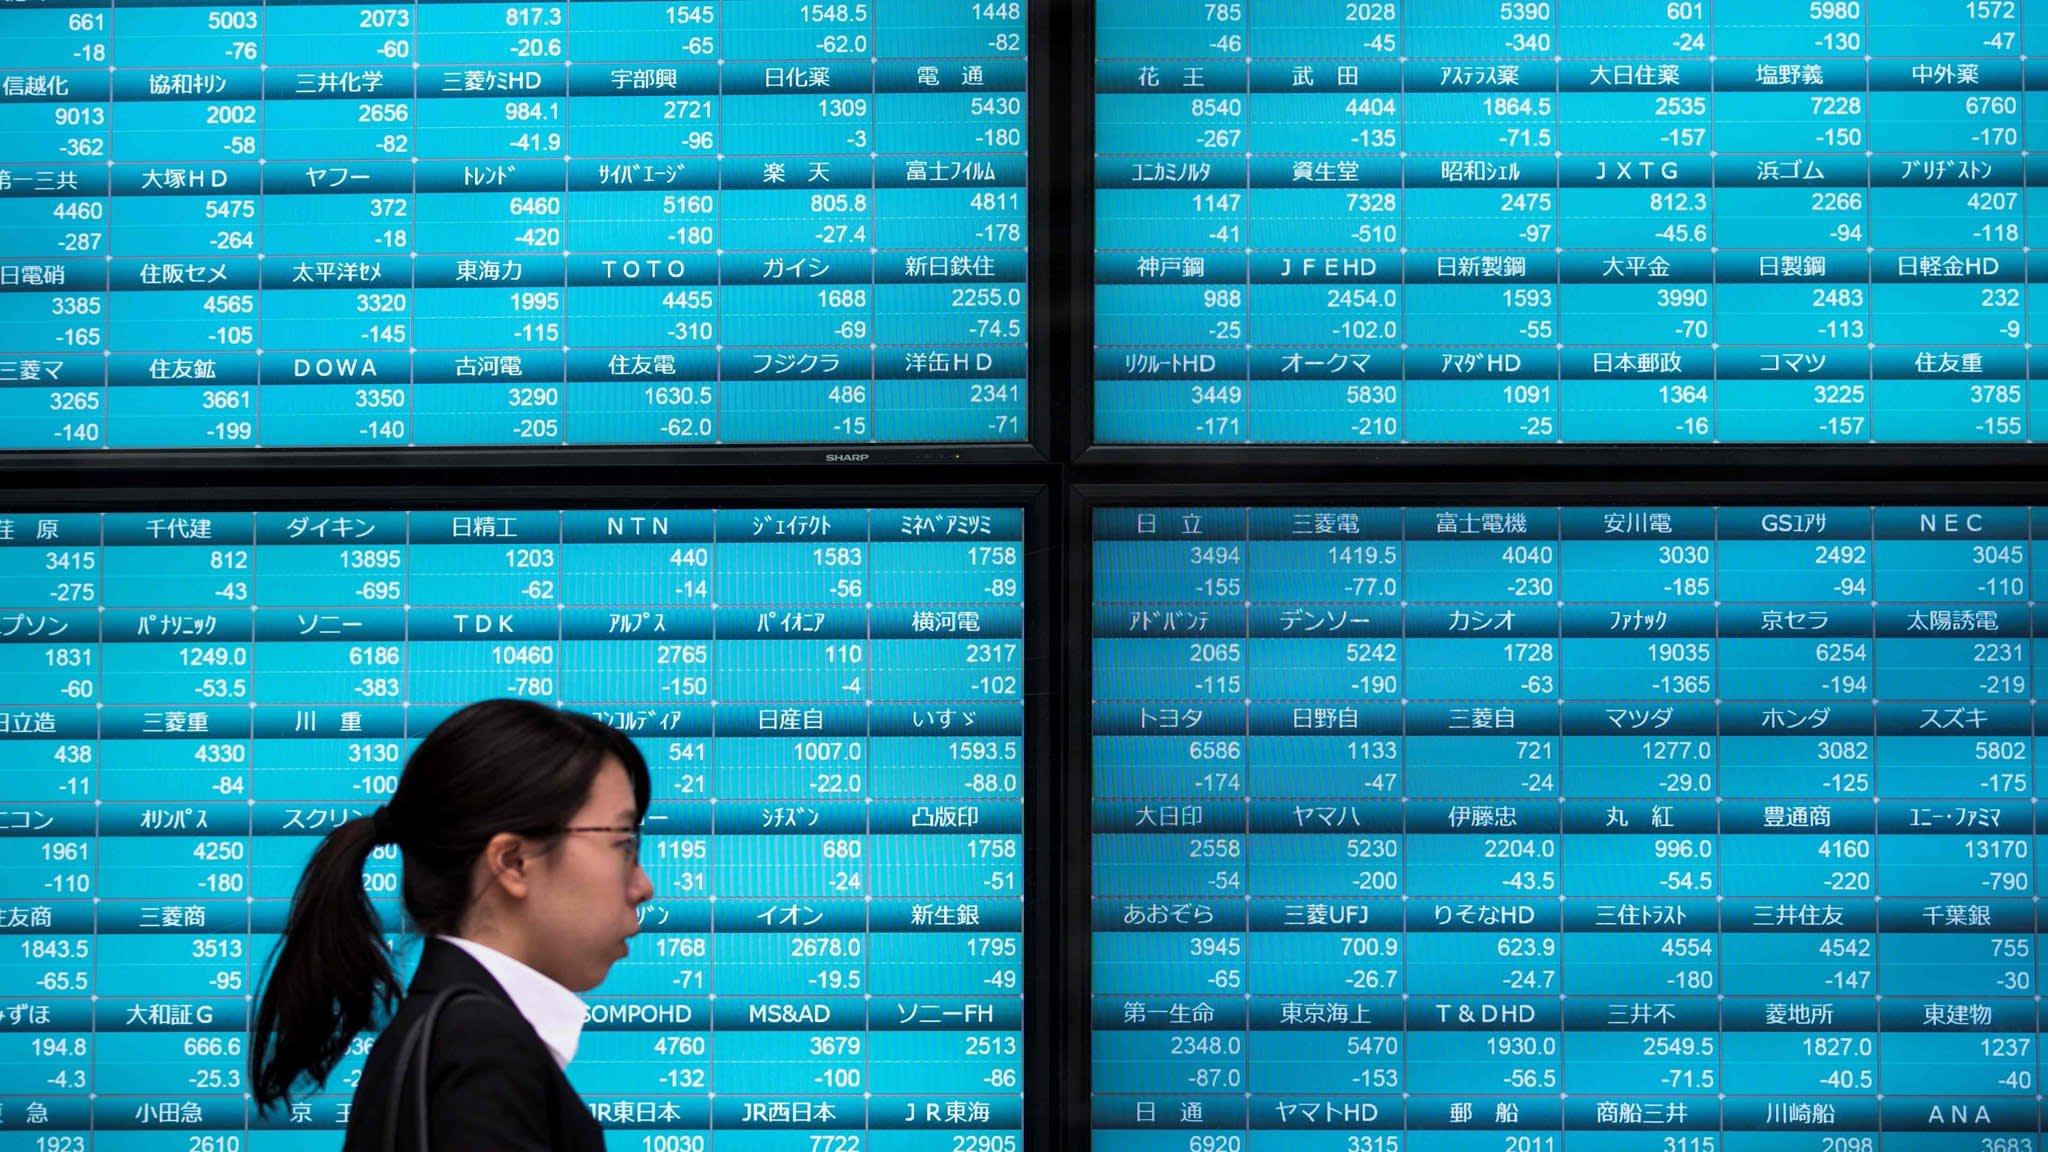 Asia shares fall as Wall Street rebound fails to gain traction